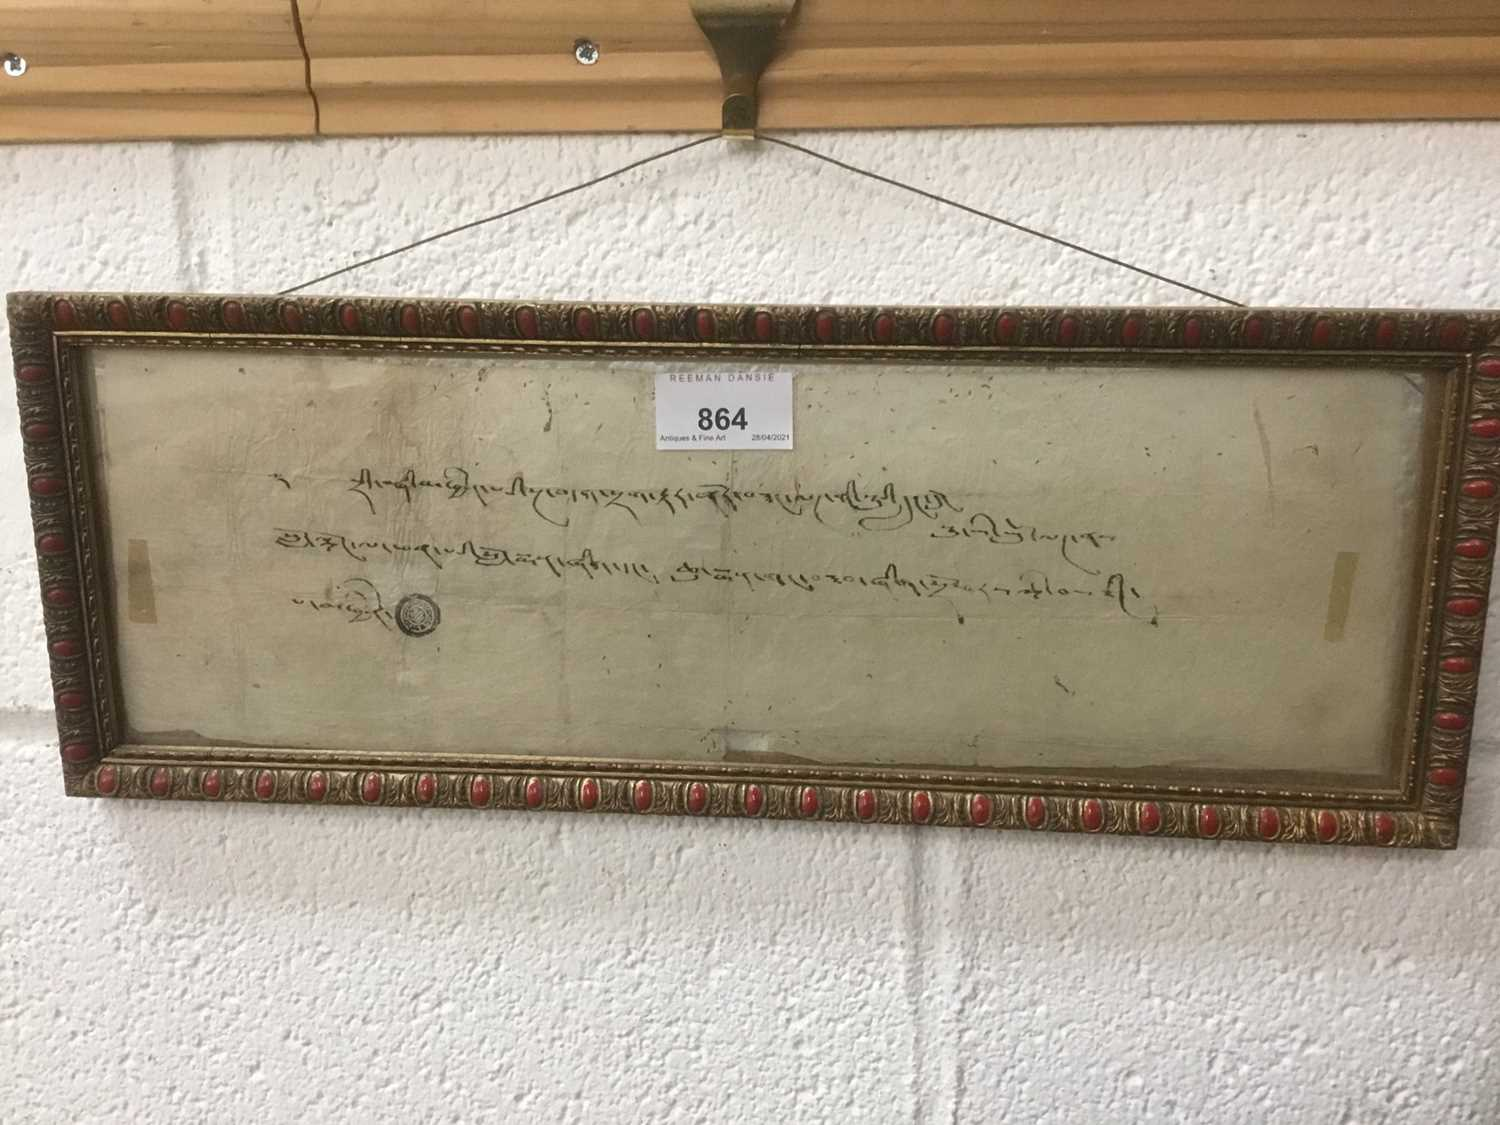 Early Tibetan thangka together with a related framed letter - Image 2 of 14